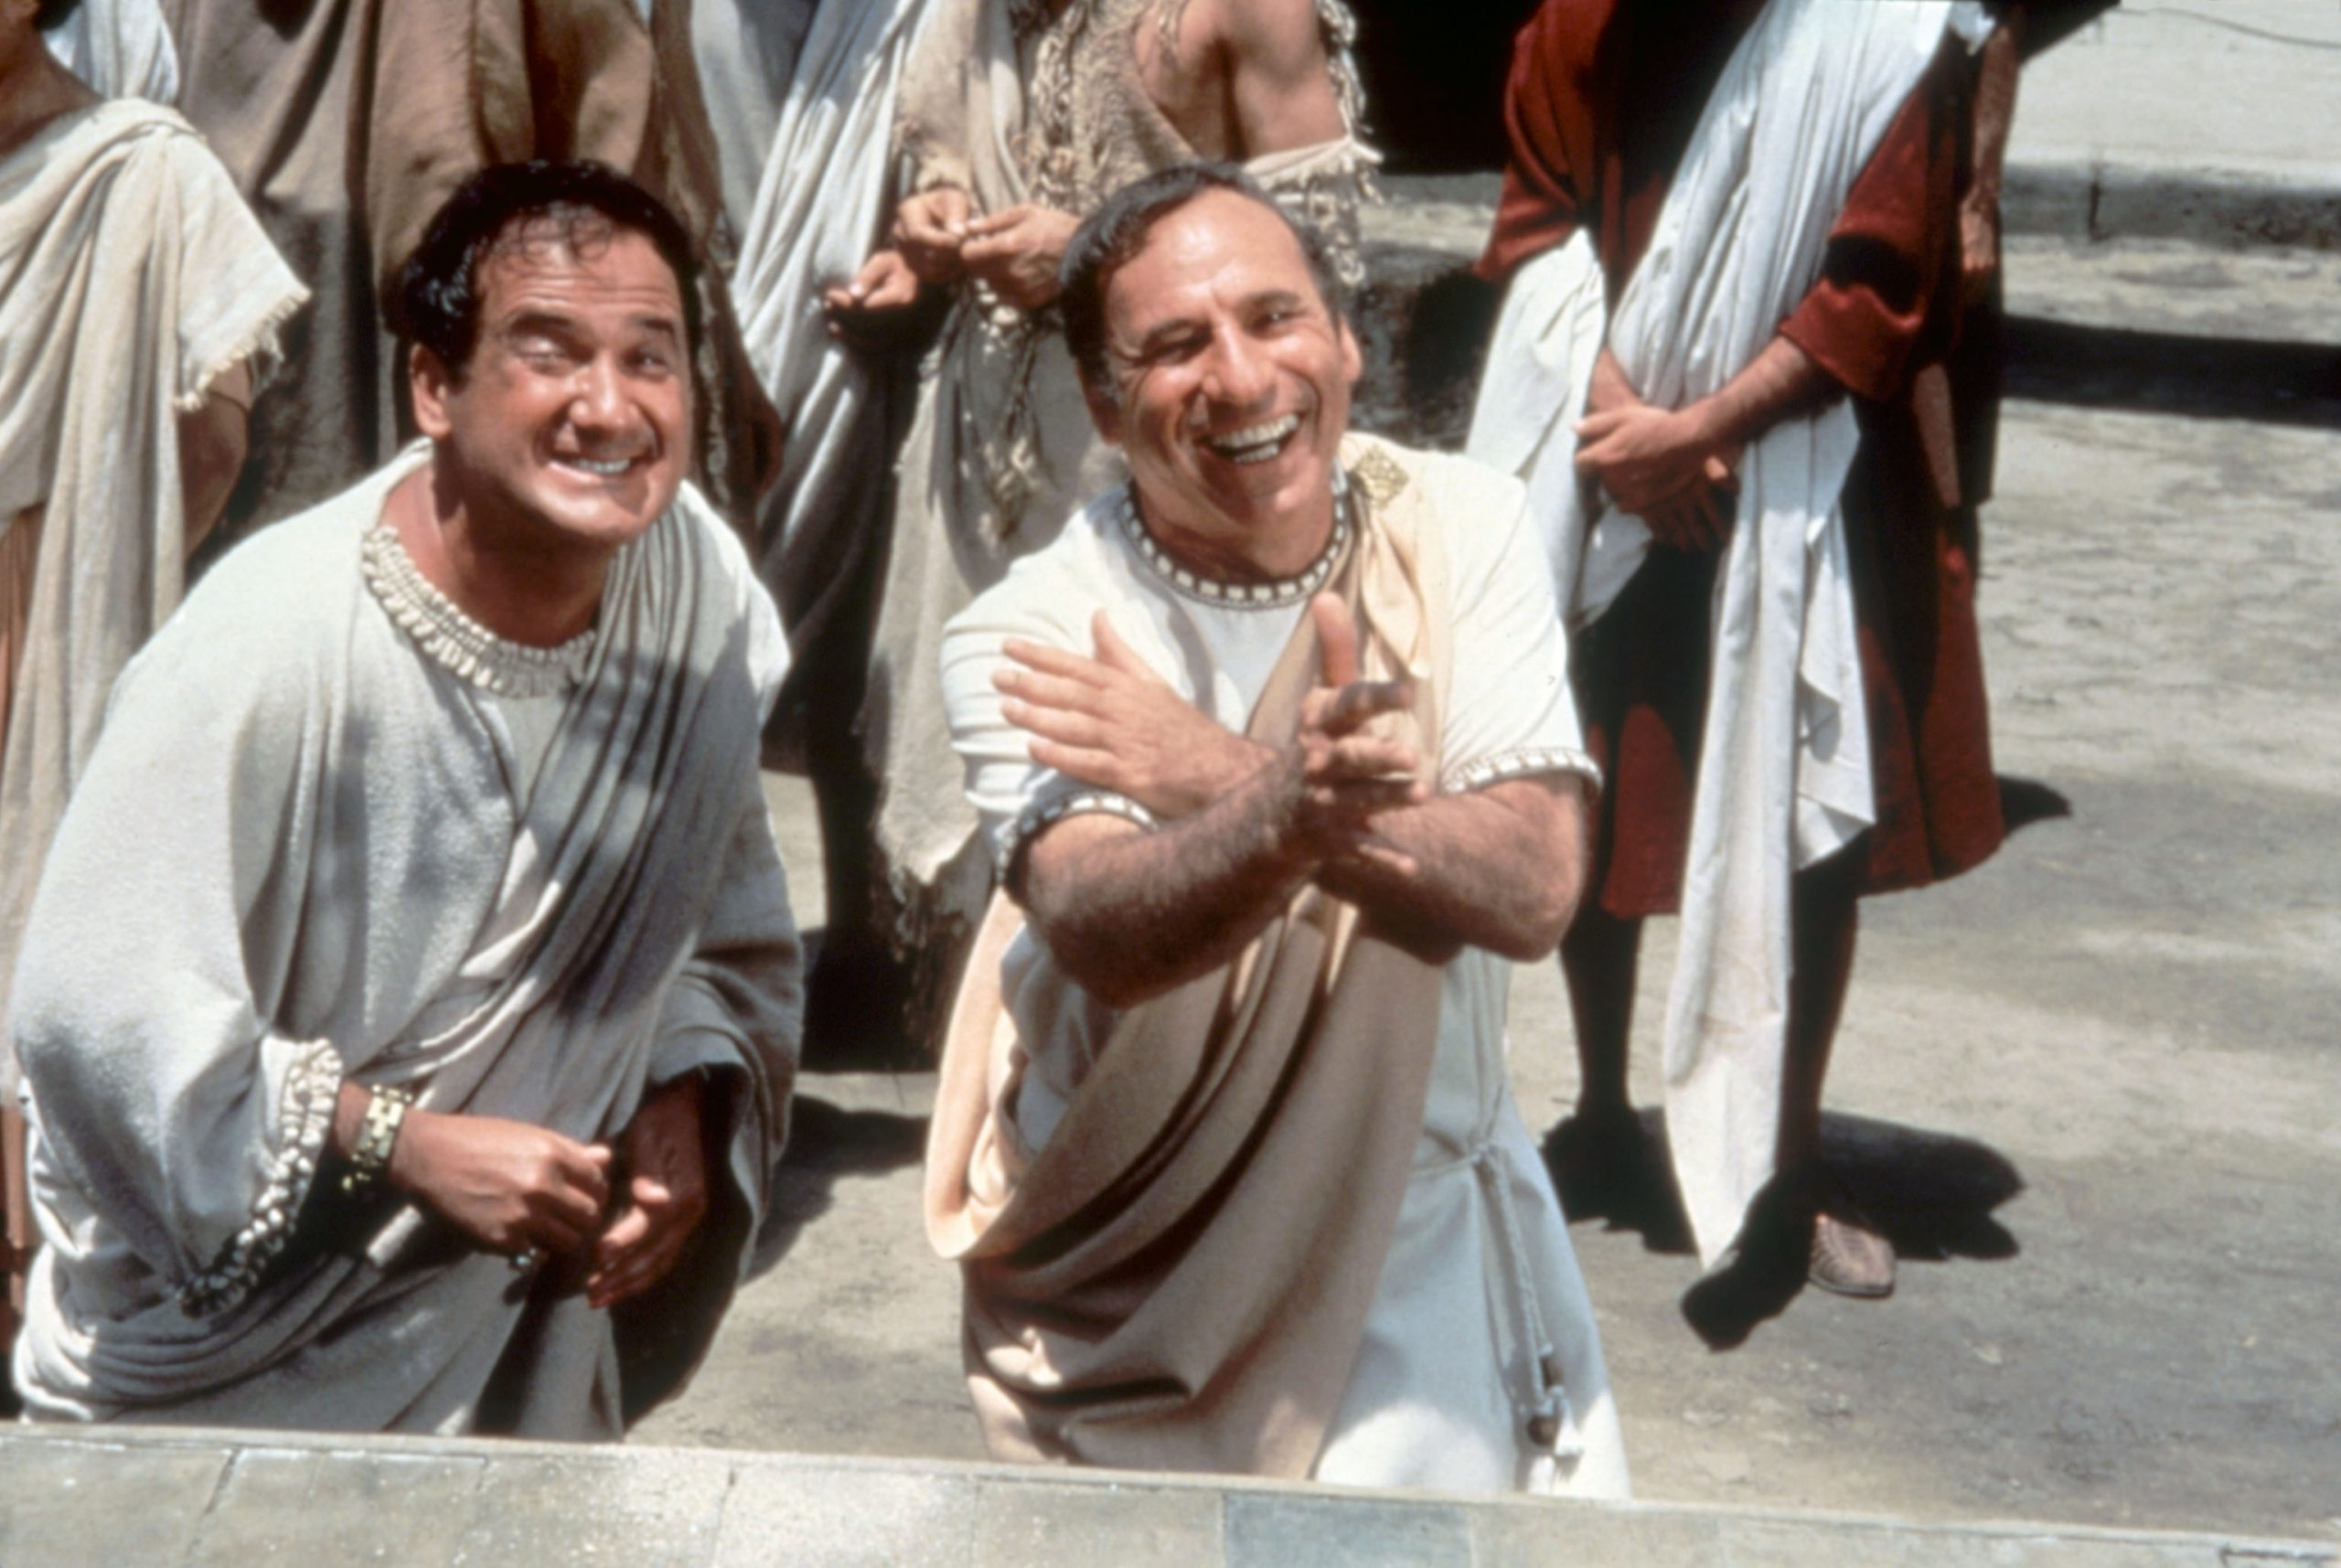 Carey and Mel Brooks in HIstory of the World Part 1